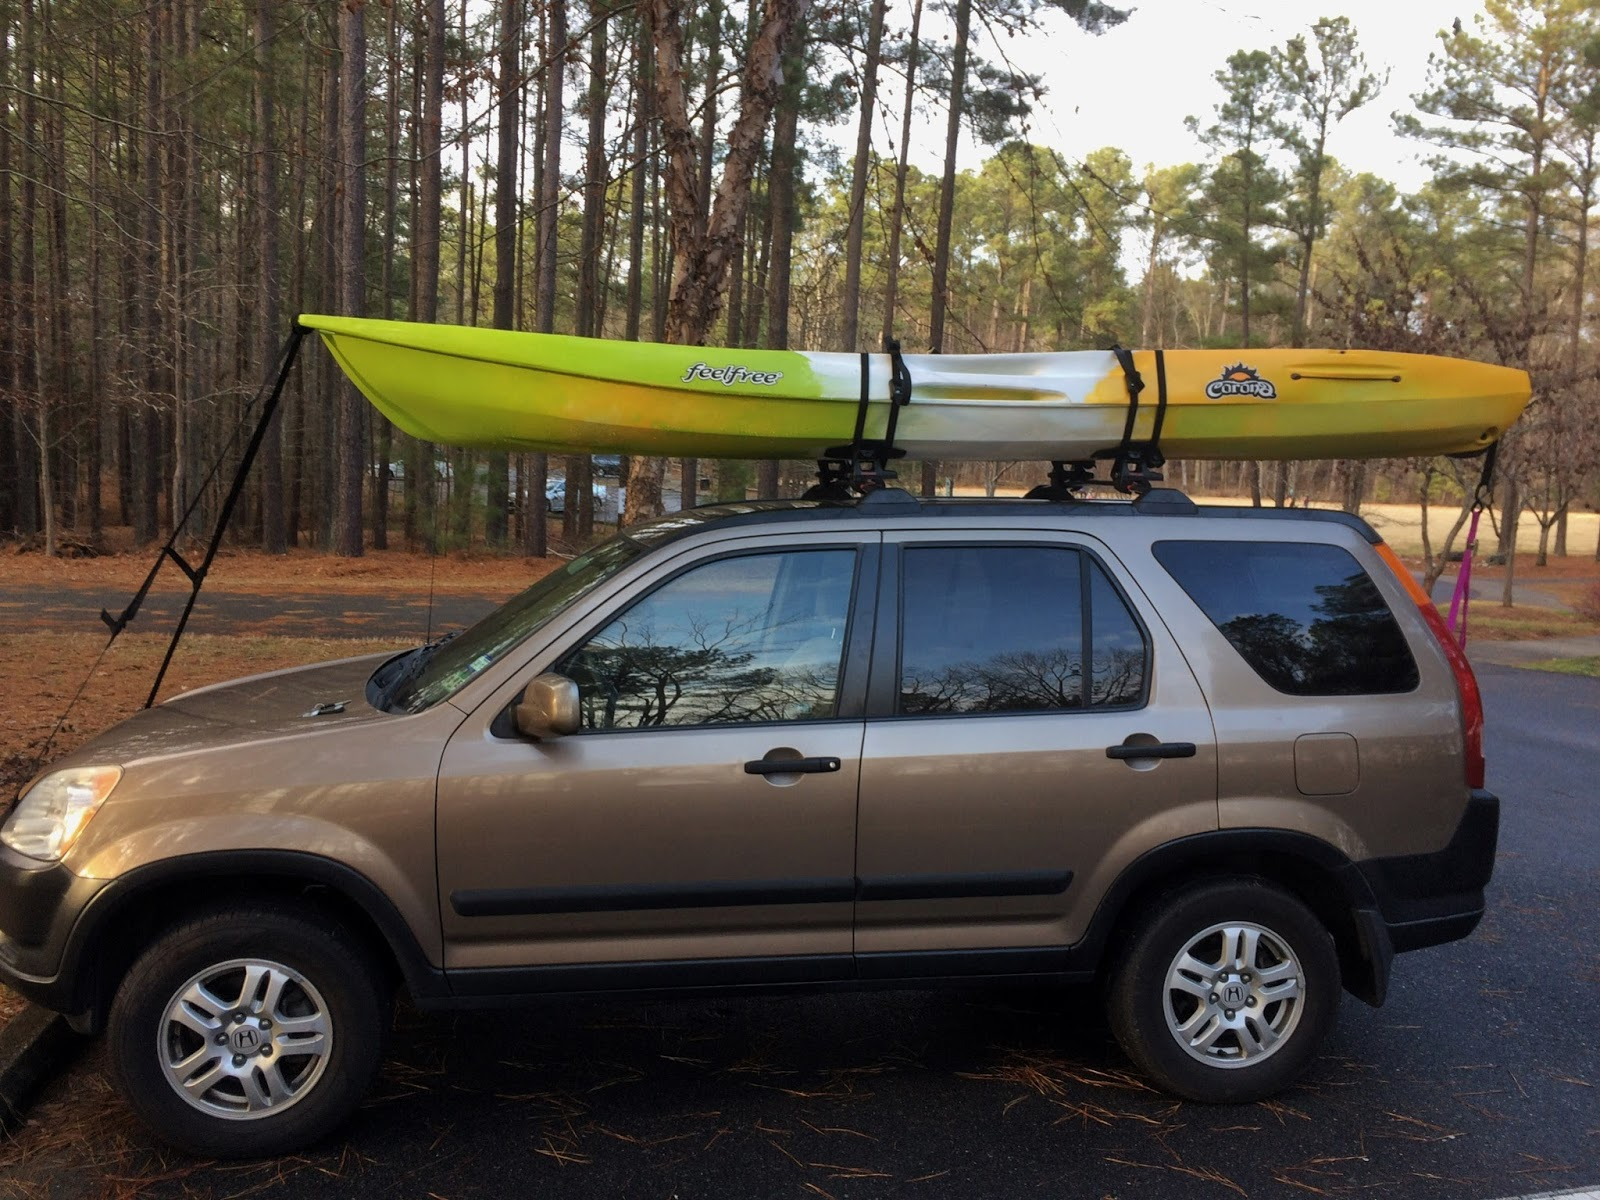 out boundary a cfm i waters and black my kayak forum pipe canoe index canoeiowa bwca with gear is here pool noodle of did roof truck bed pvc what racks rack diy trucks straps two for made cover ladder